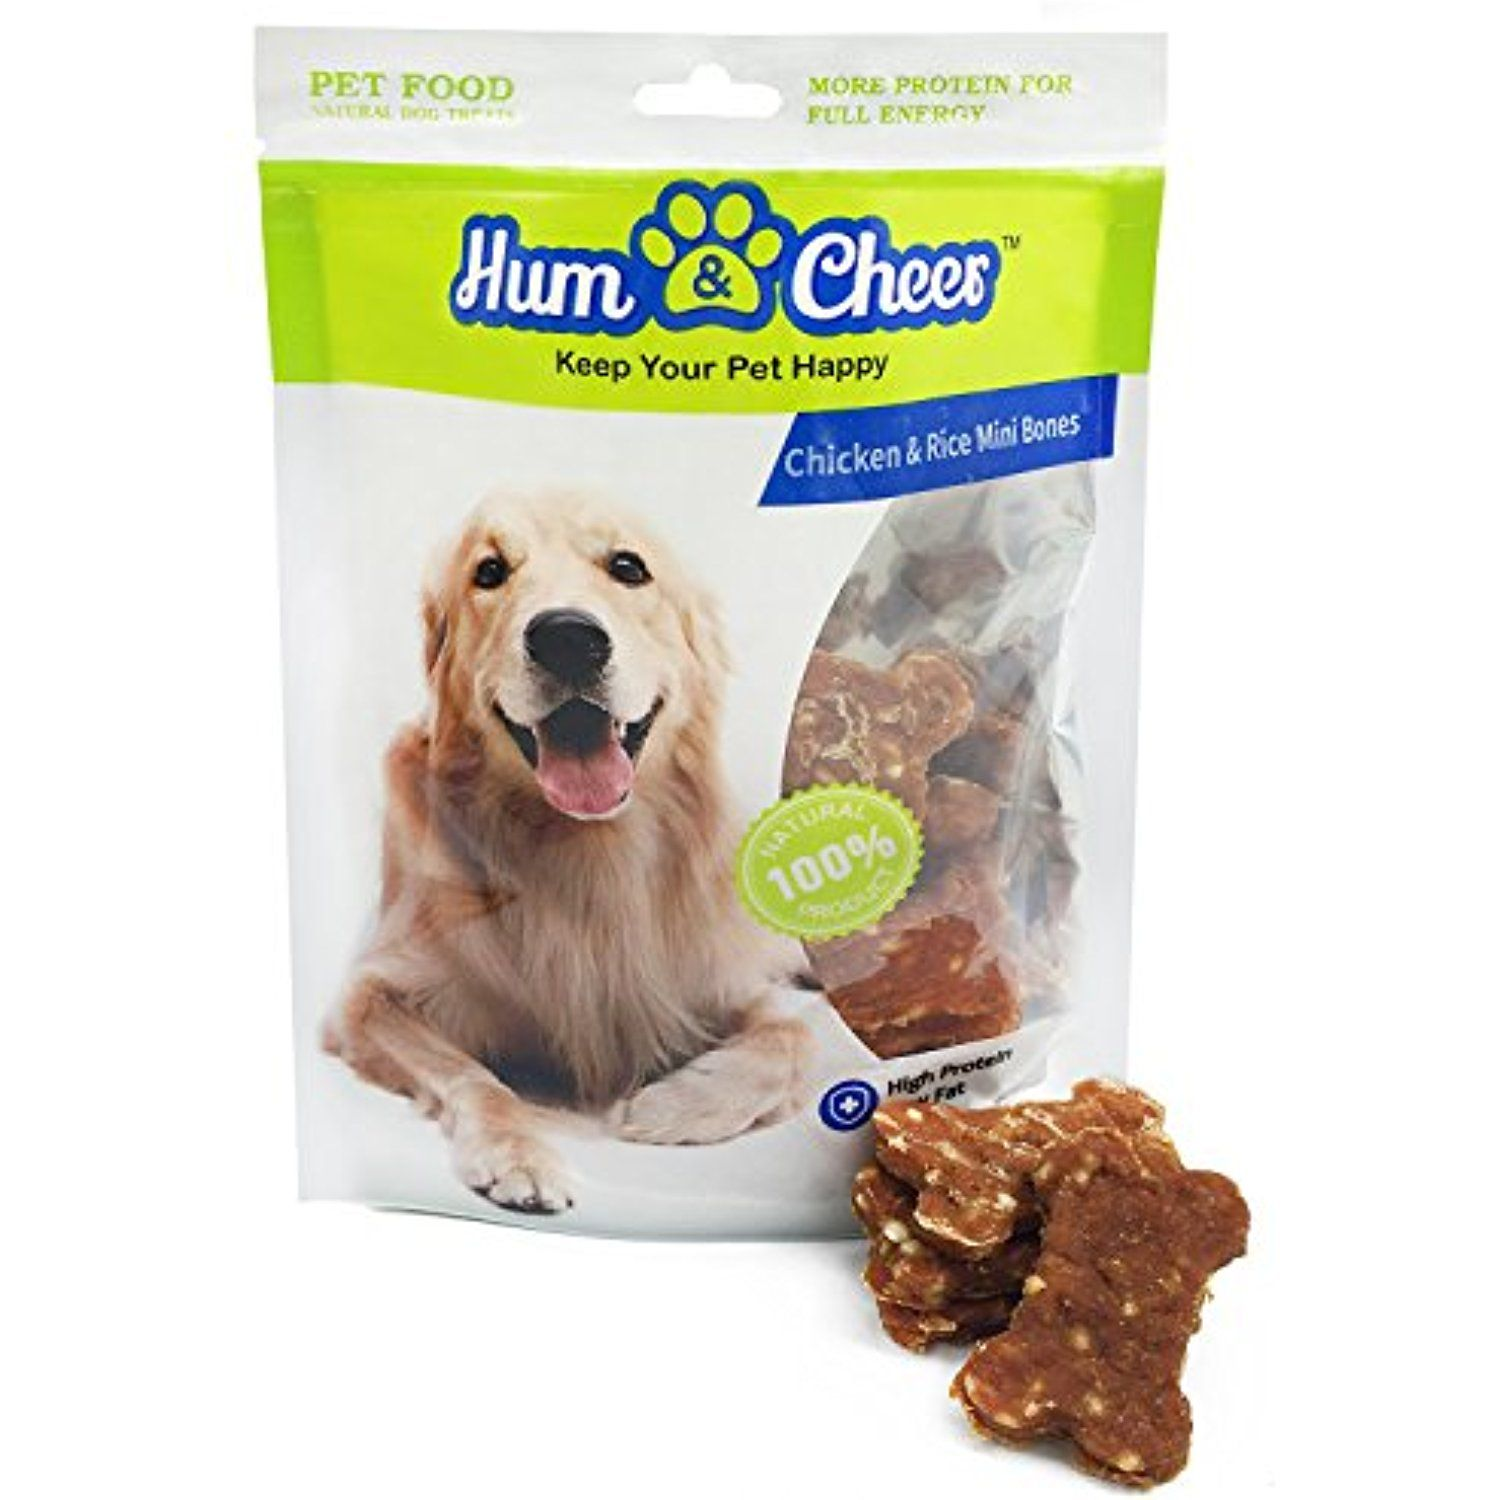 Hum Cheer Premium Dog Treats Chews Chicken Rice Mini Bones